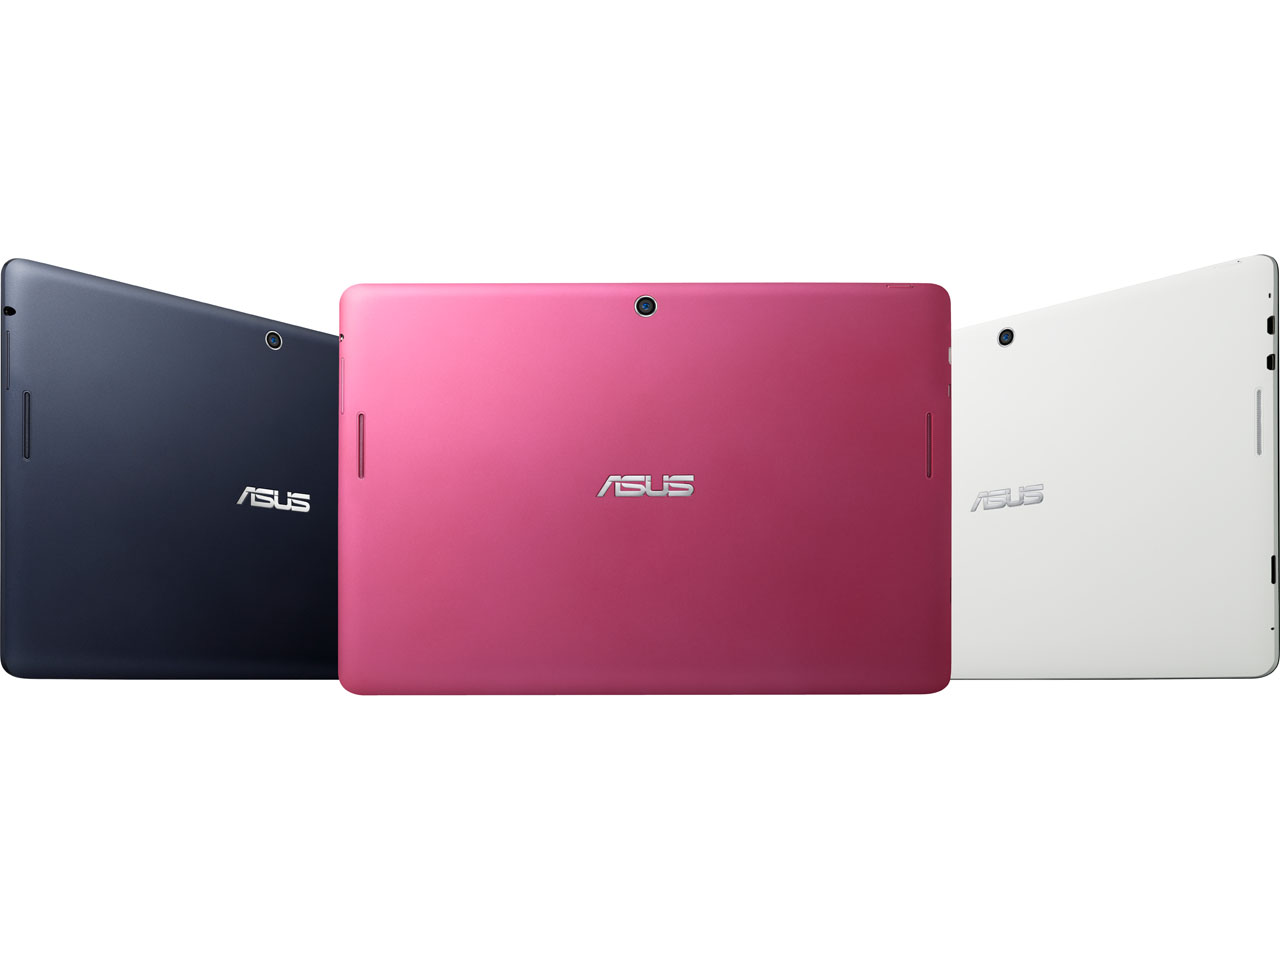 asus-memo-pad-smart-10-back-blue-pink-white.jpg